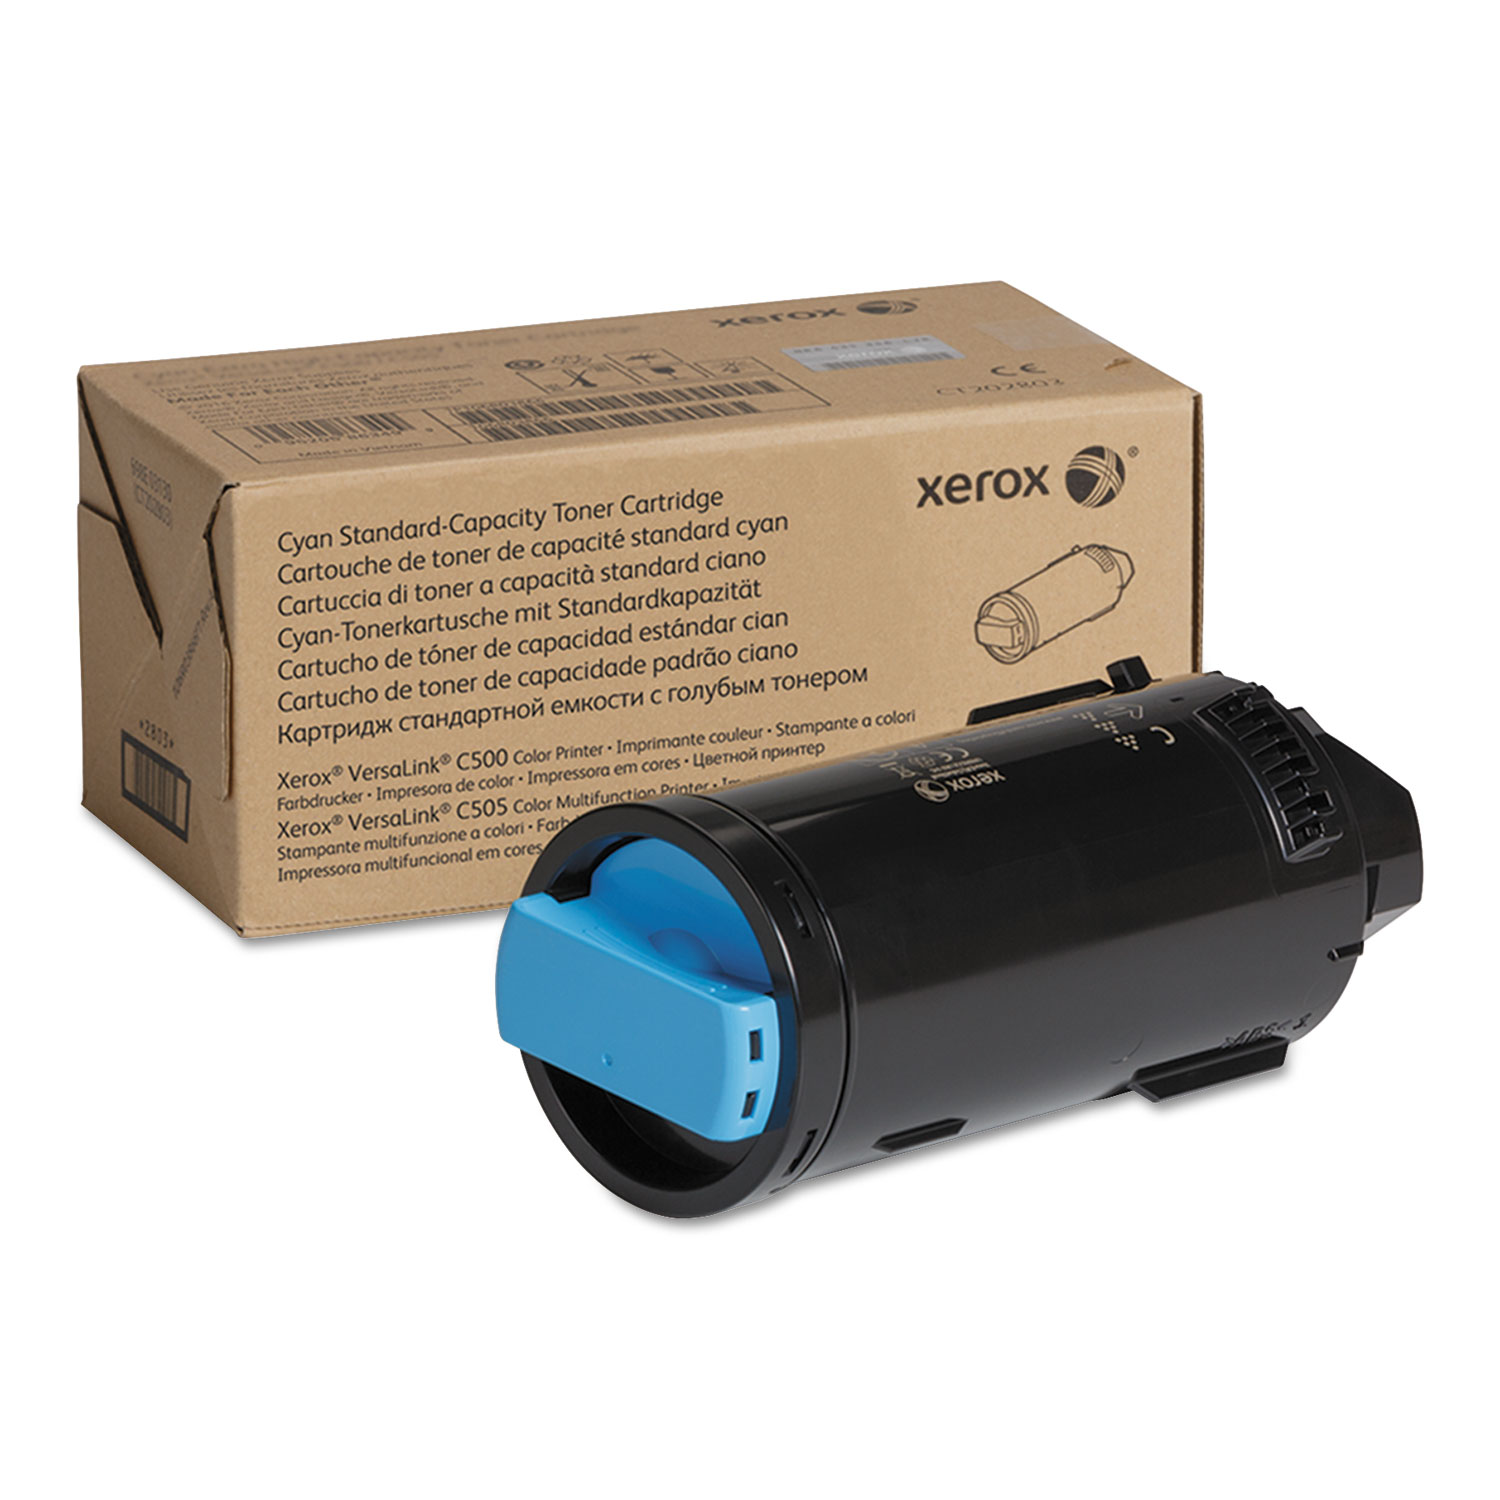 106R03859 Toner, 2400 Page-Yield, Cyan